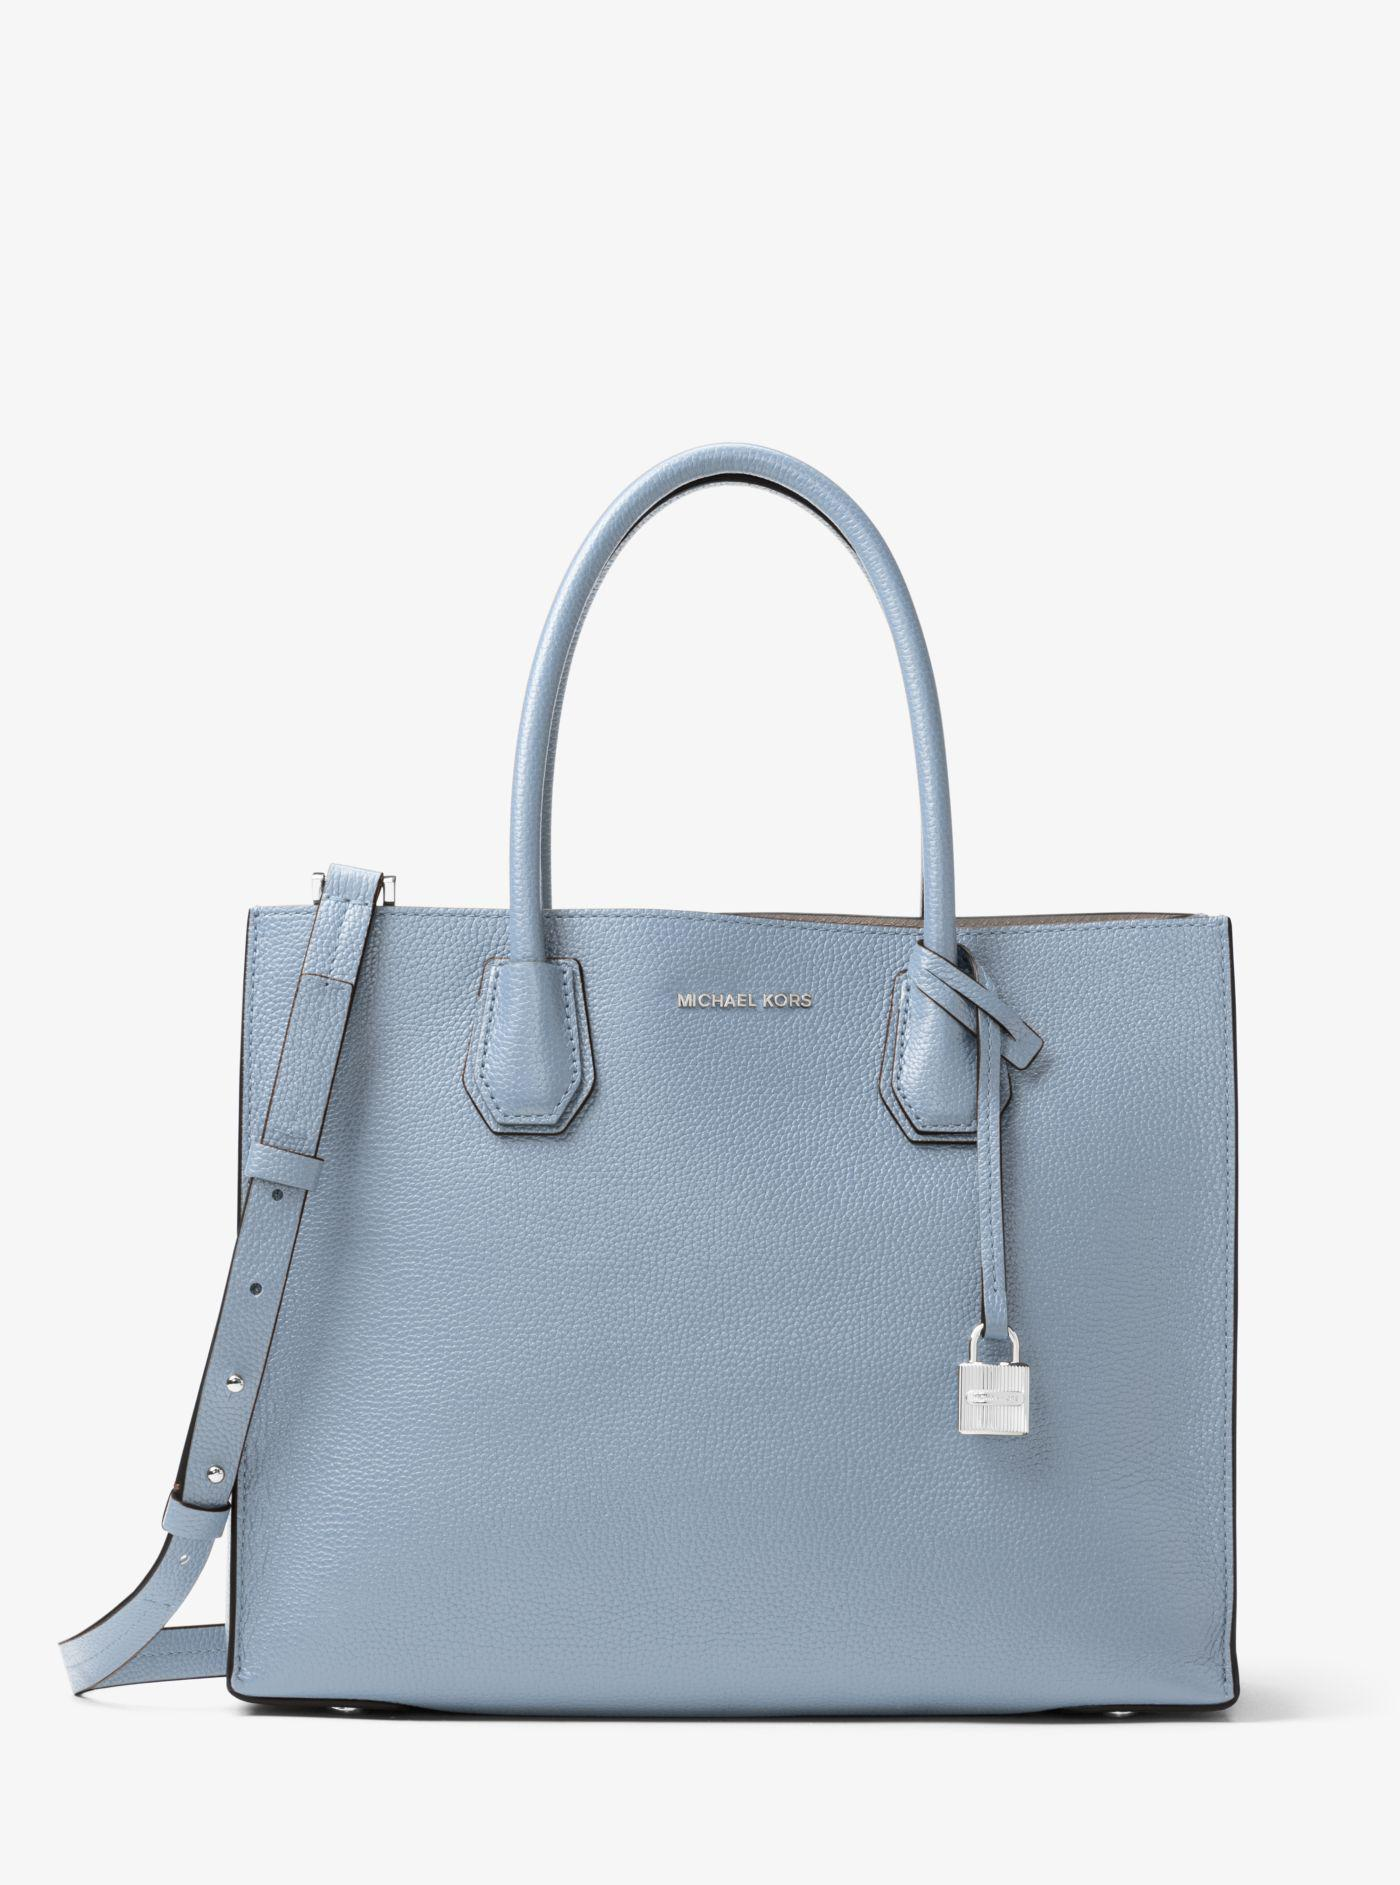 0d24680ef5 ... shop lyst michael kors mercer large leather tote in blue 3dc05 54bce